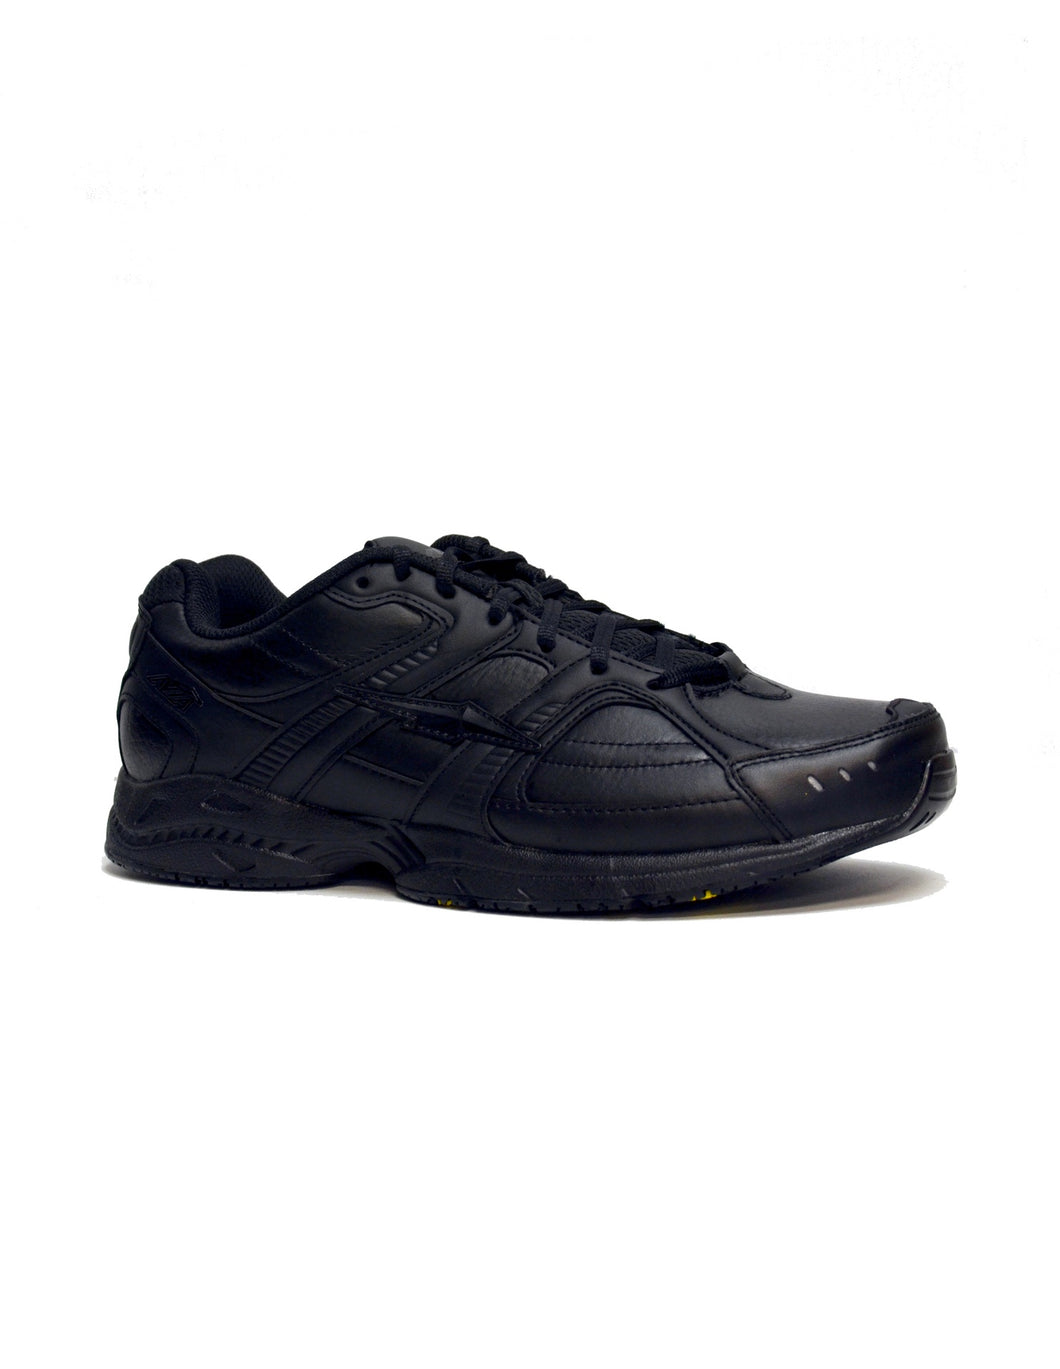 Terra | 225015 | Non-Slip Lace Shoe | Black